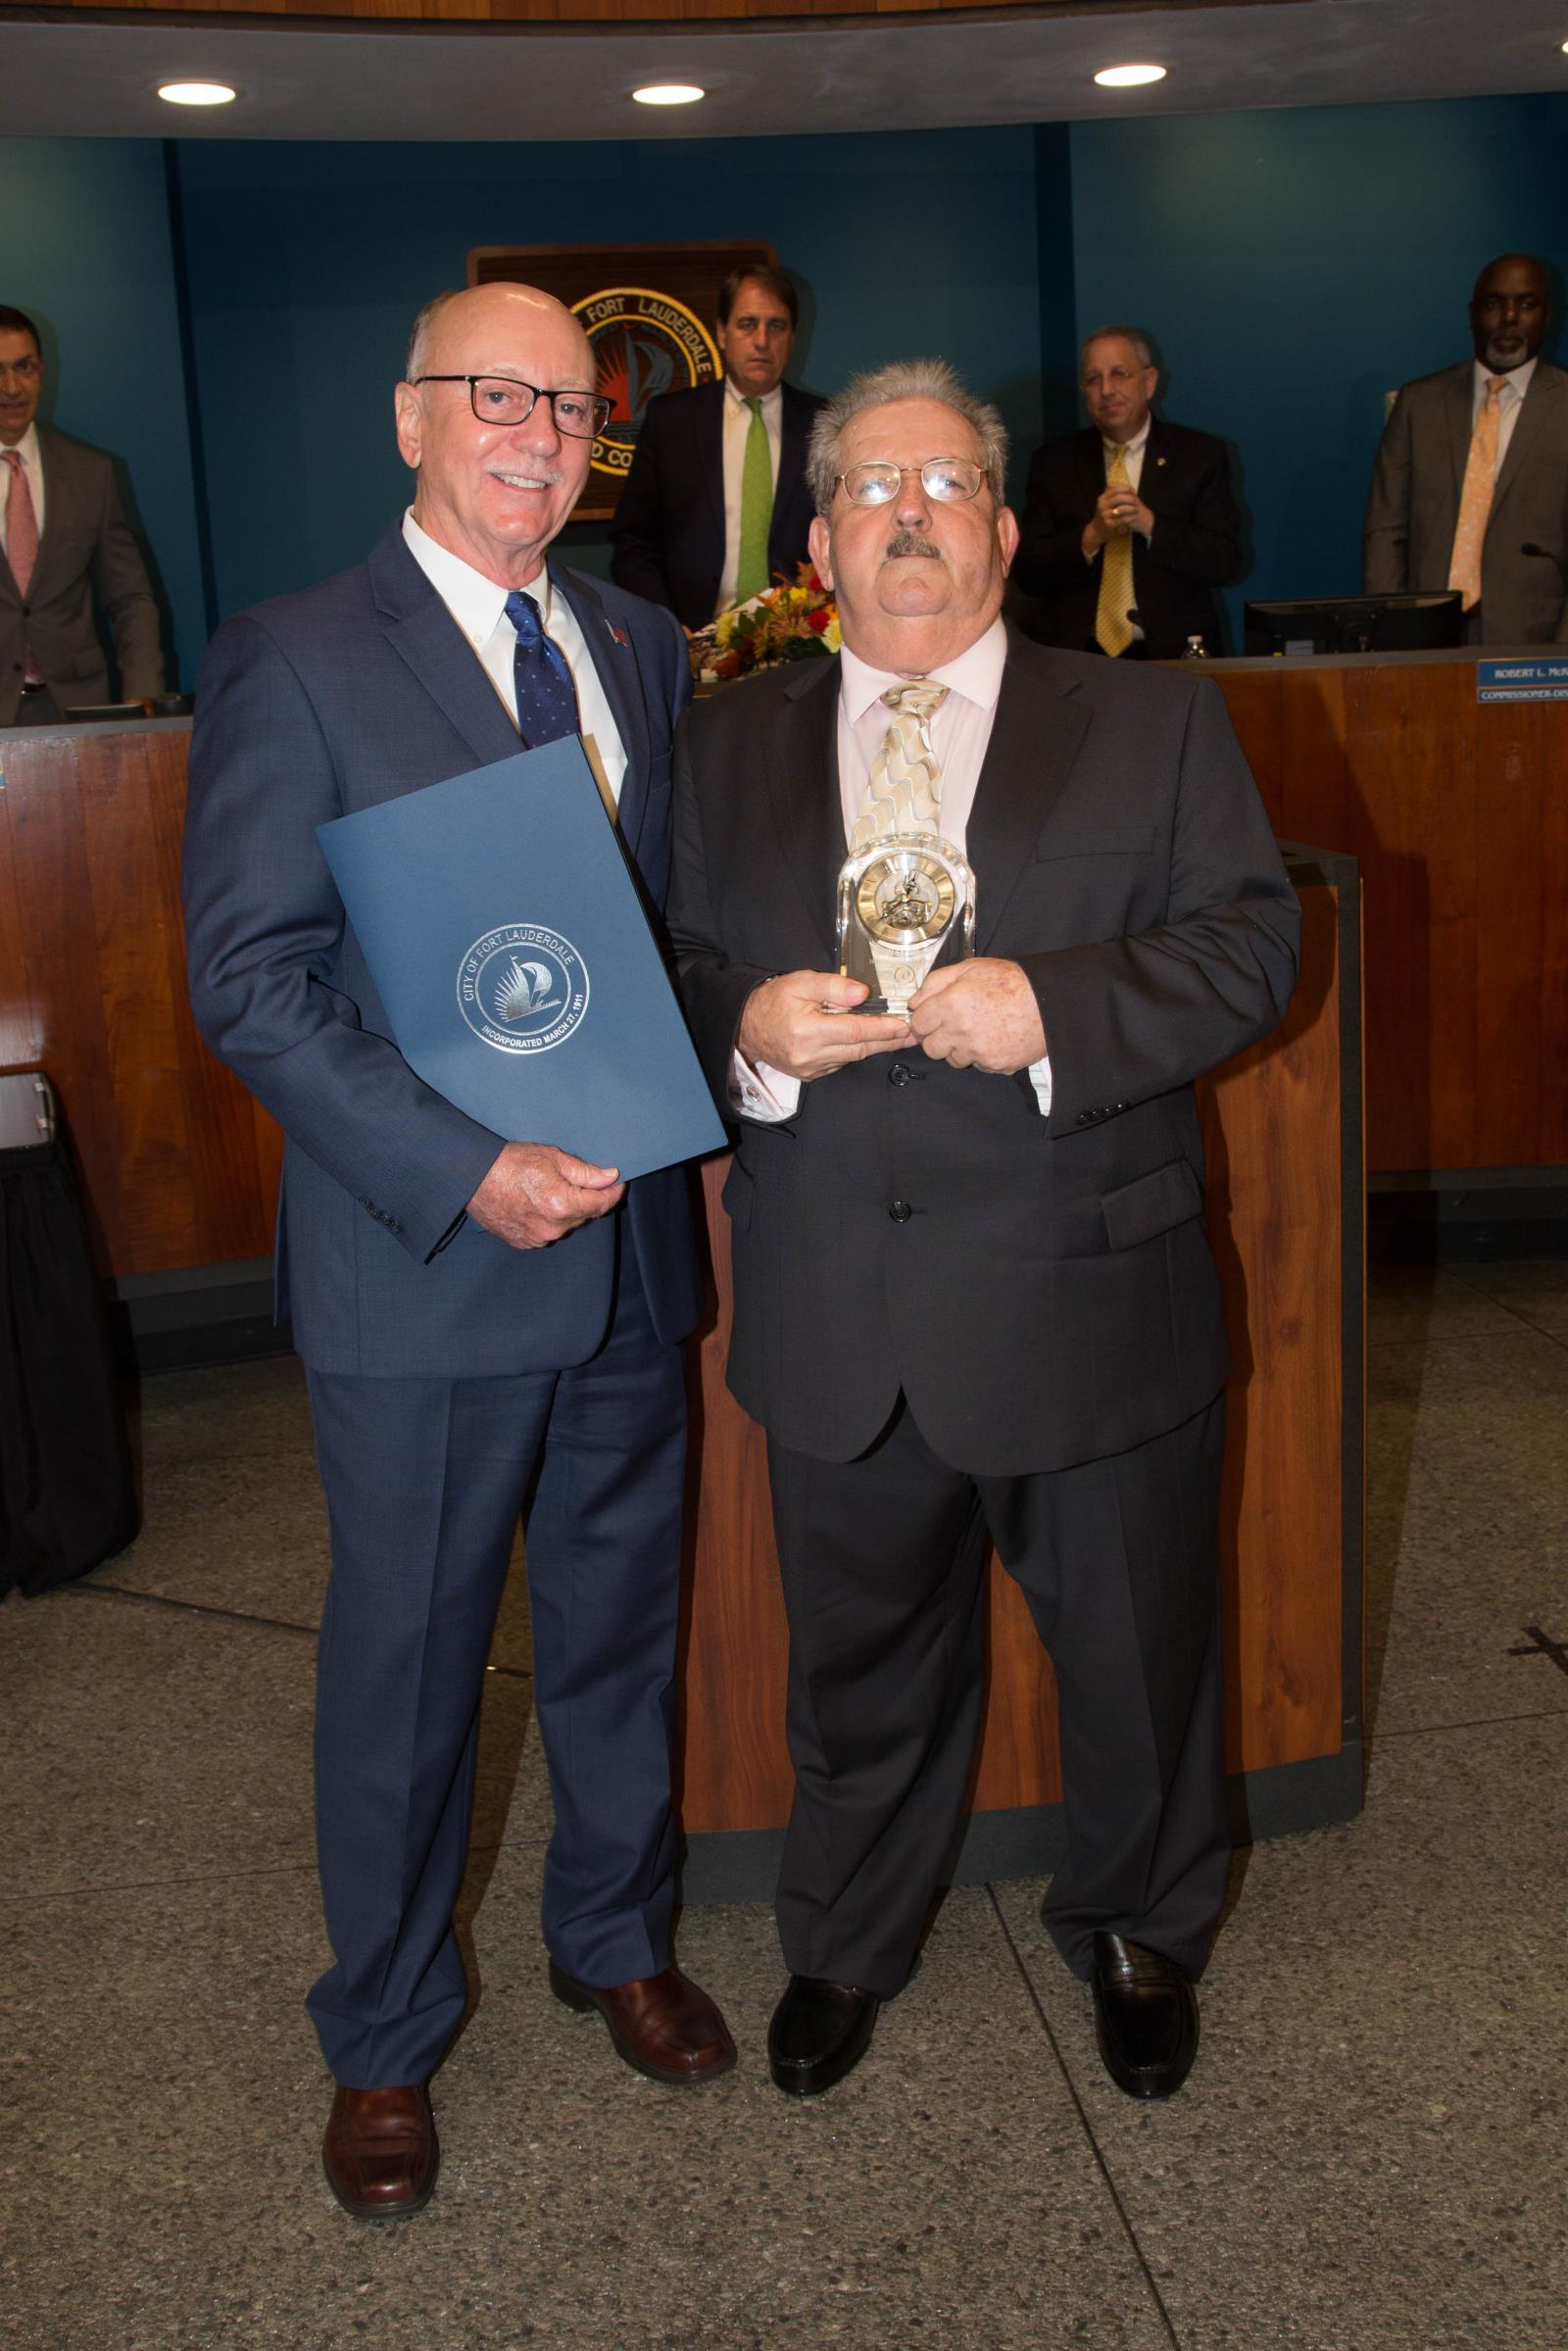 Vice Mayor Roberts with 2017 Distinguished Citizen Ronald J. Centamore